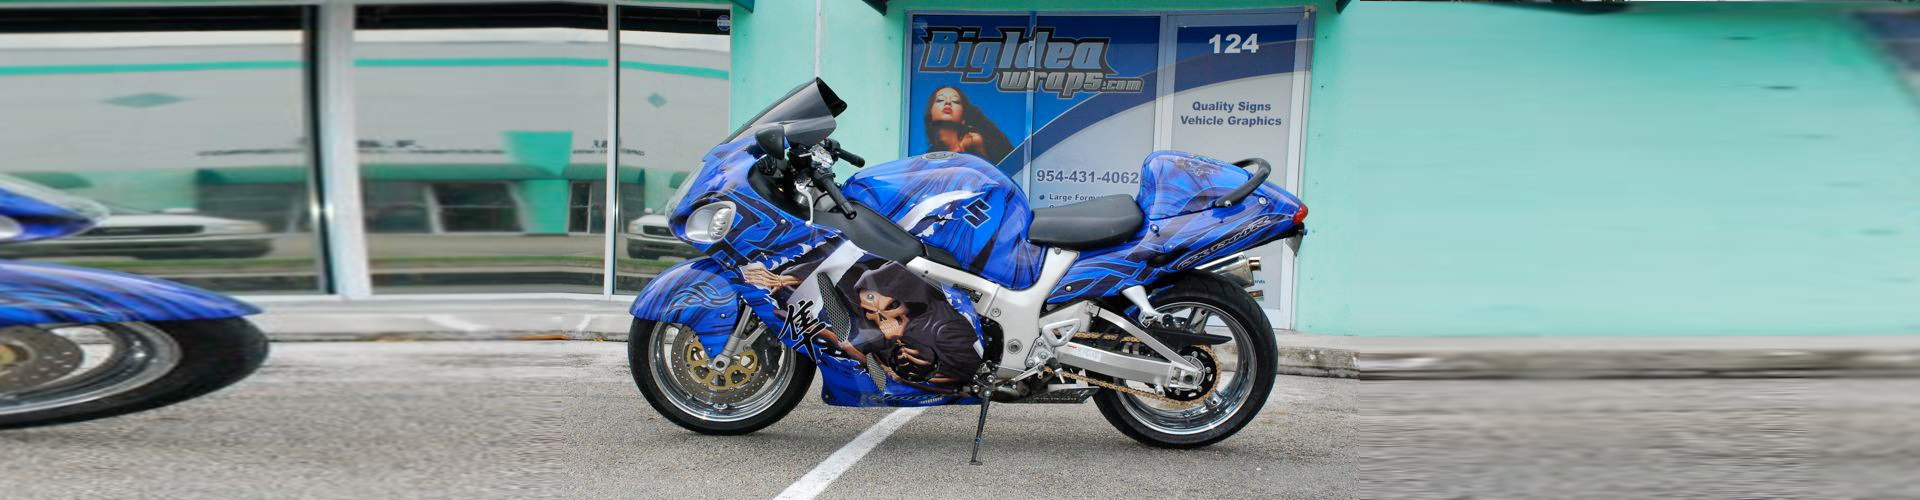 a blue motorcycle parked outside